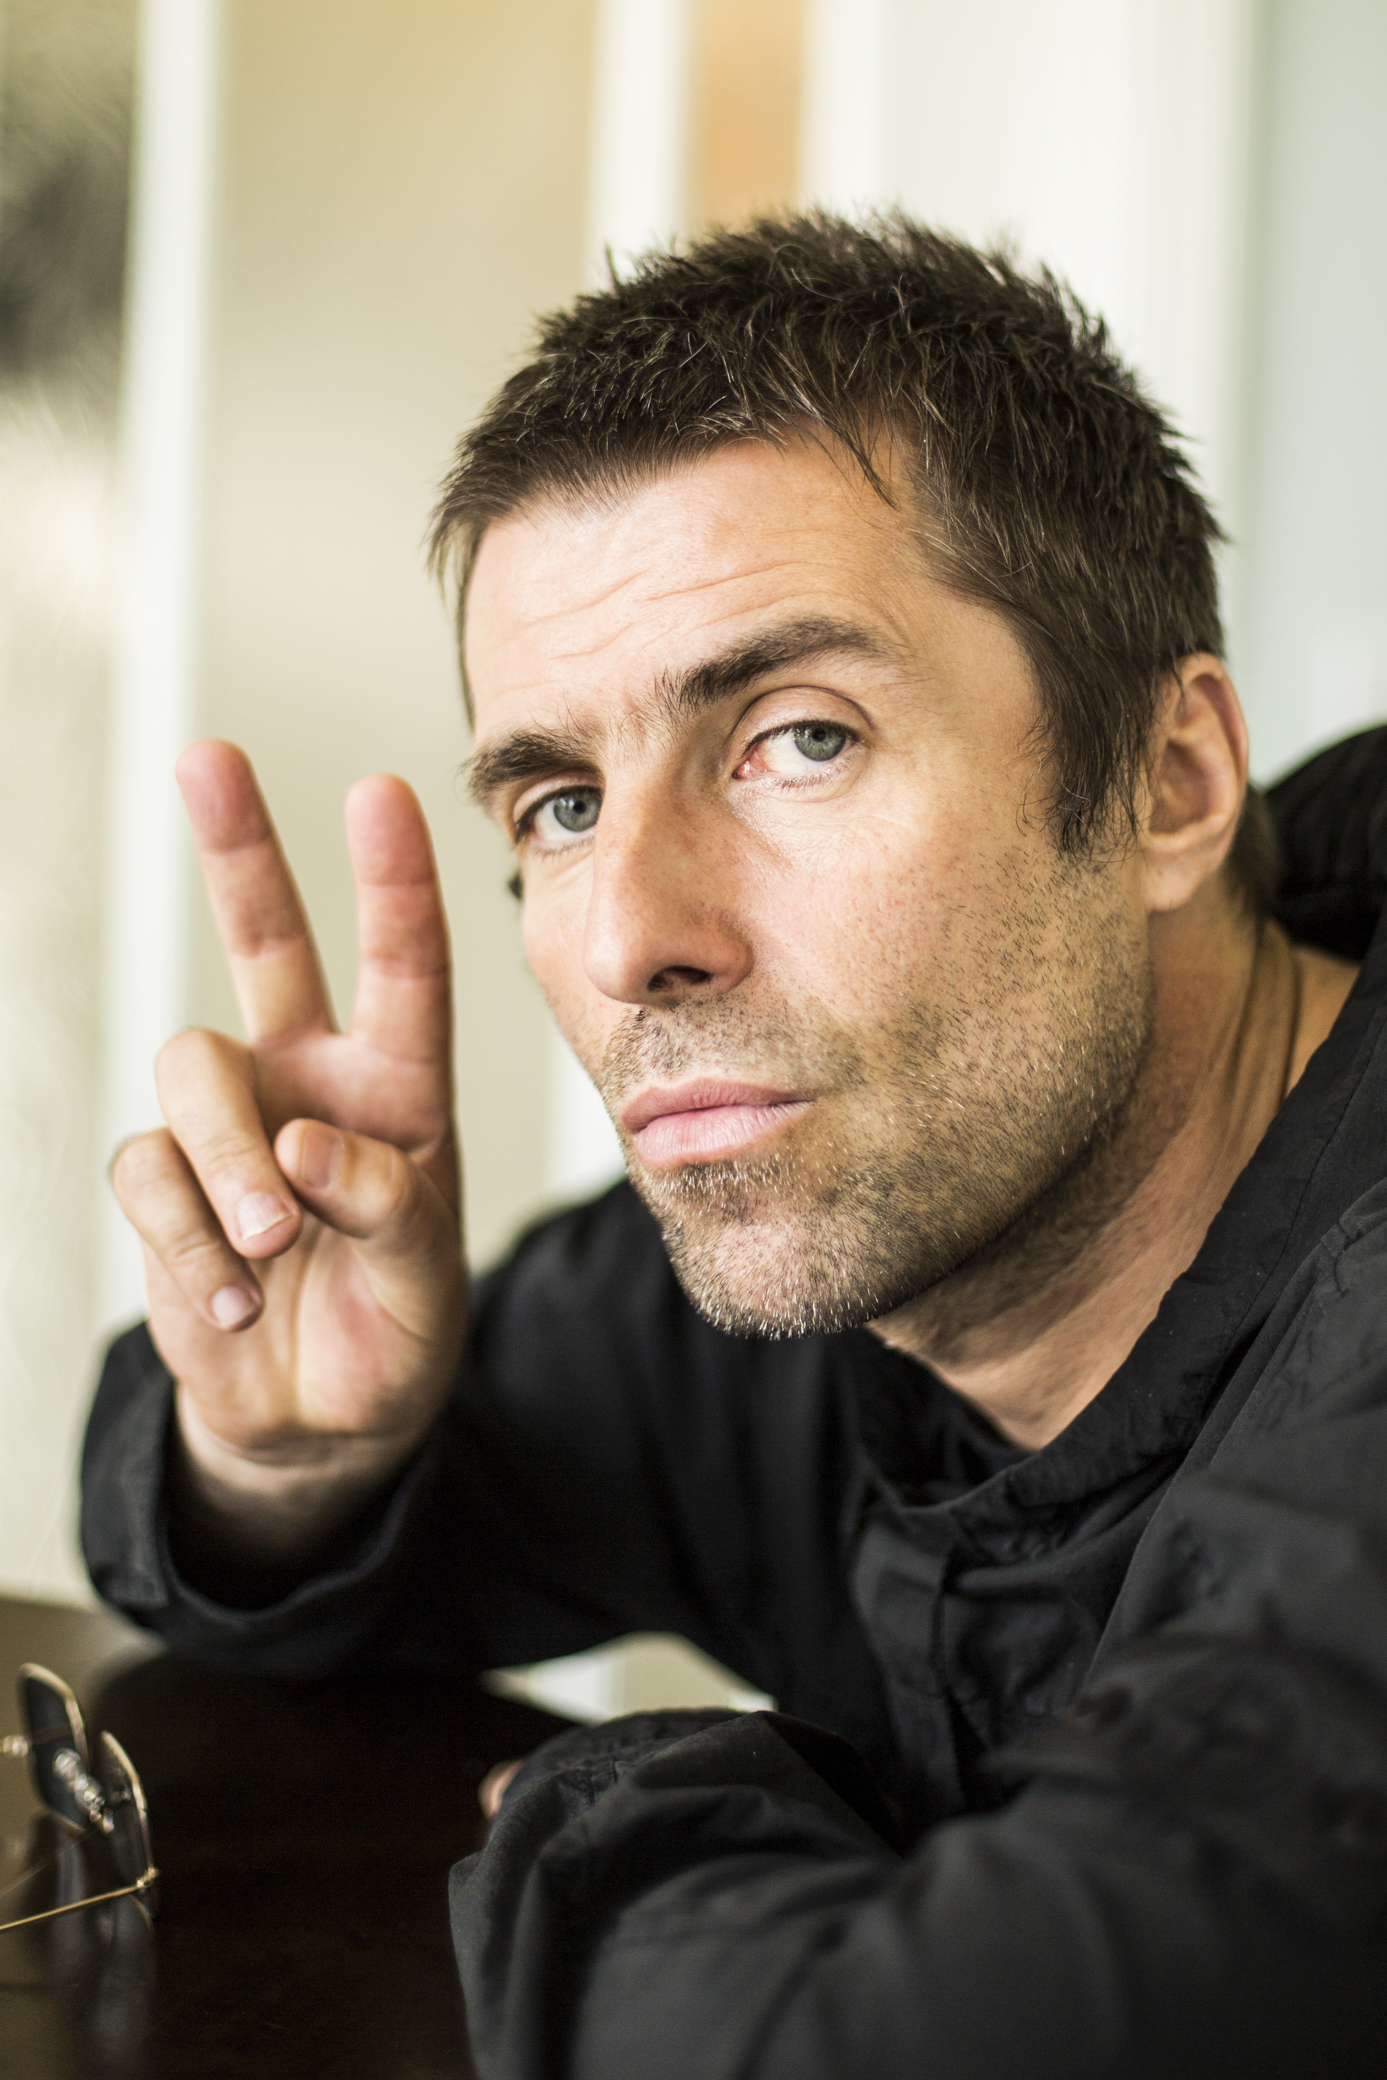 liam gallagher 21 Rock N Roll Star: A Conversation with Liam Gallagher